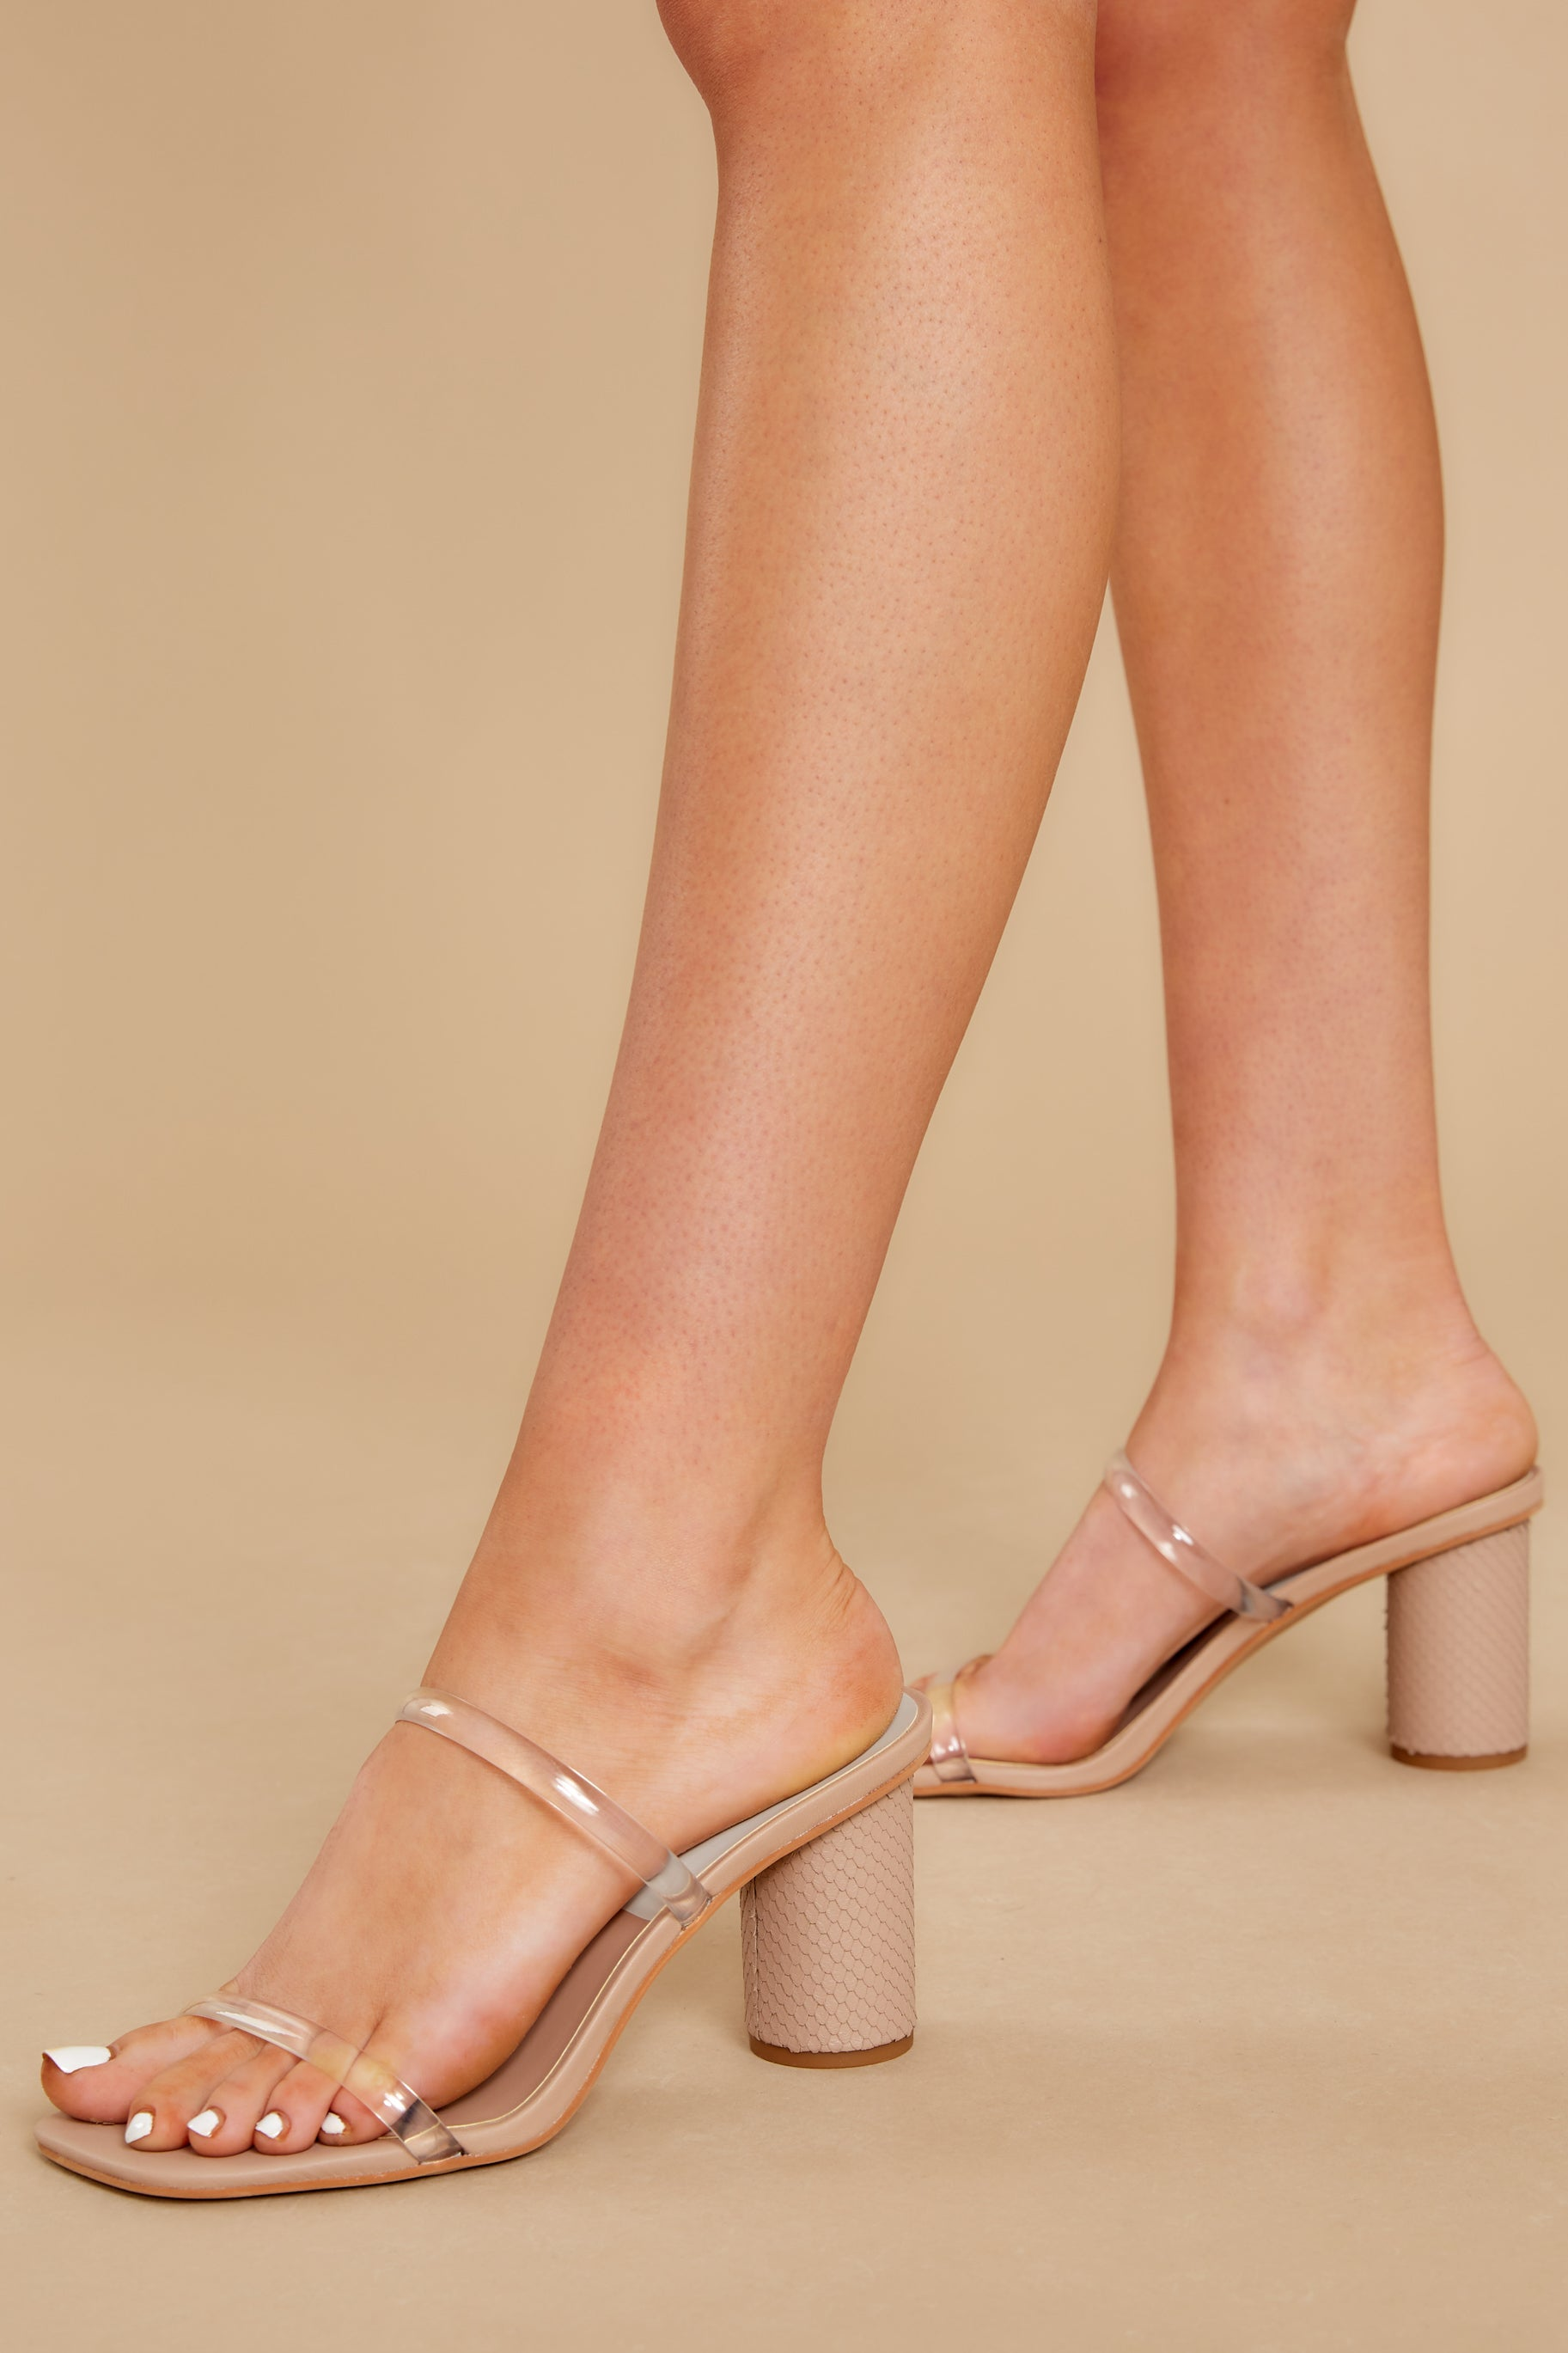 1 Noles Nude High Heel Sandals at reddress.com